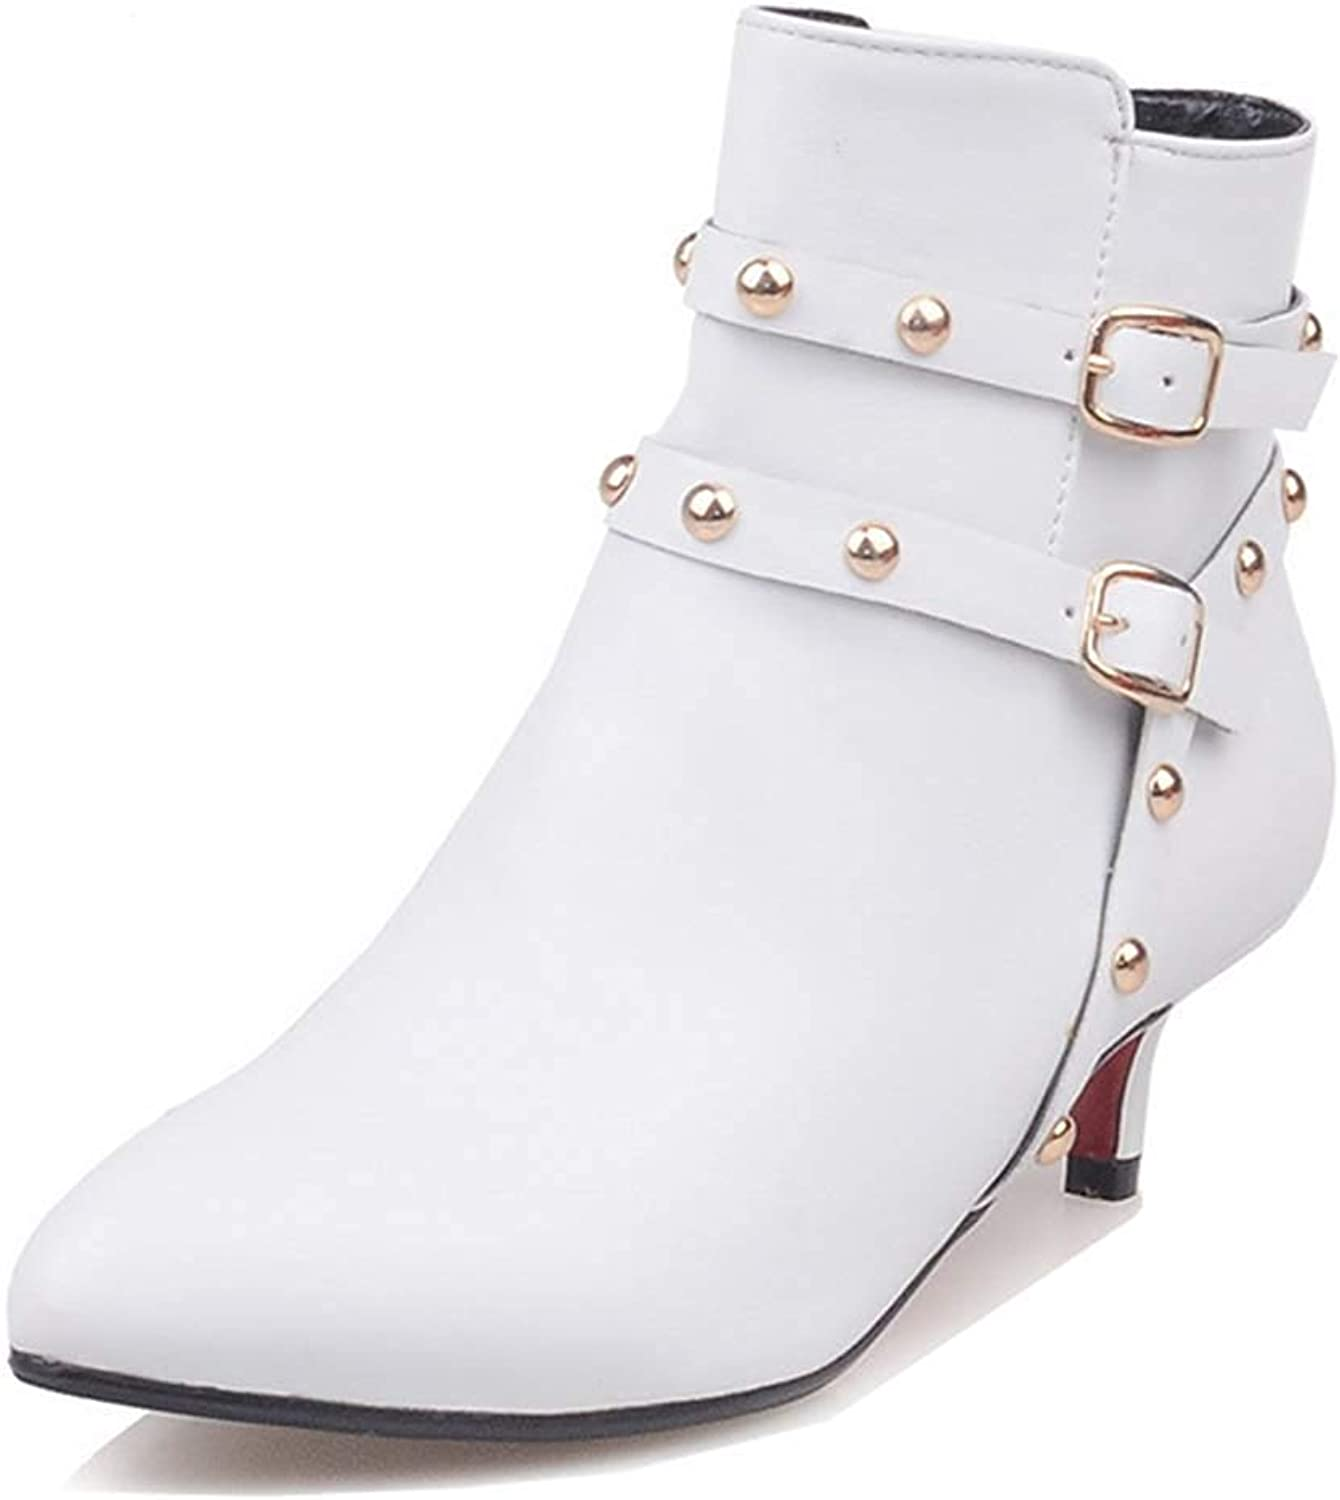 Unm Women's Sexy Studded Buckle Strap Stiletto Kitten Heel Booties Pointy Toe Ankle Boots with Zipper